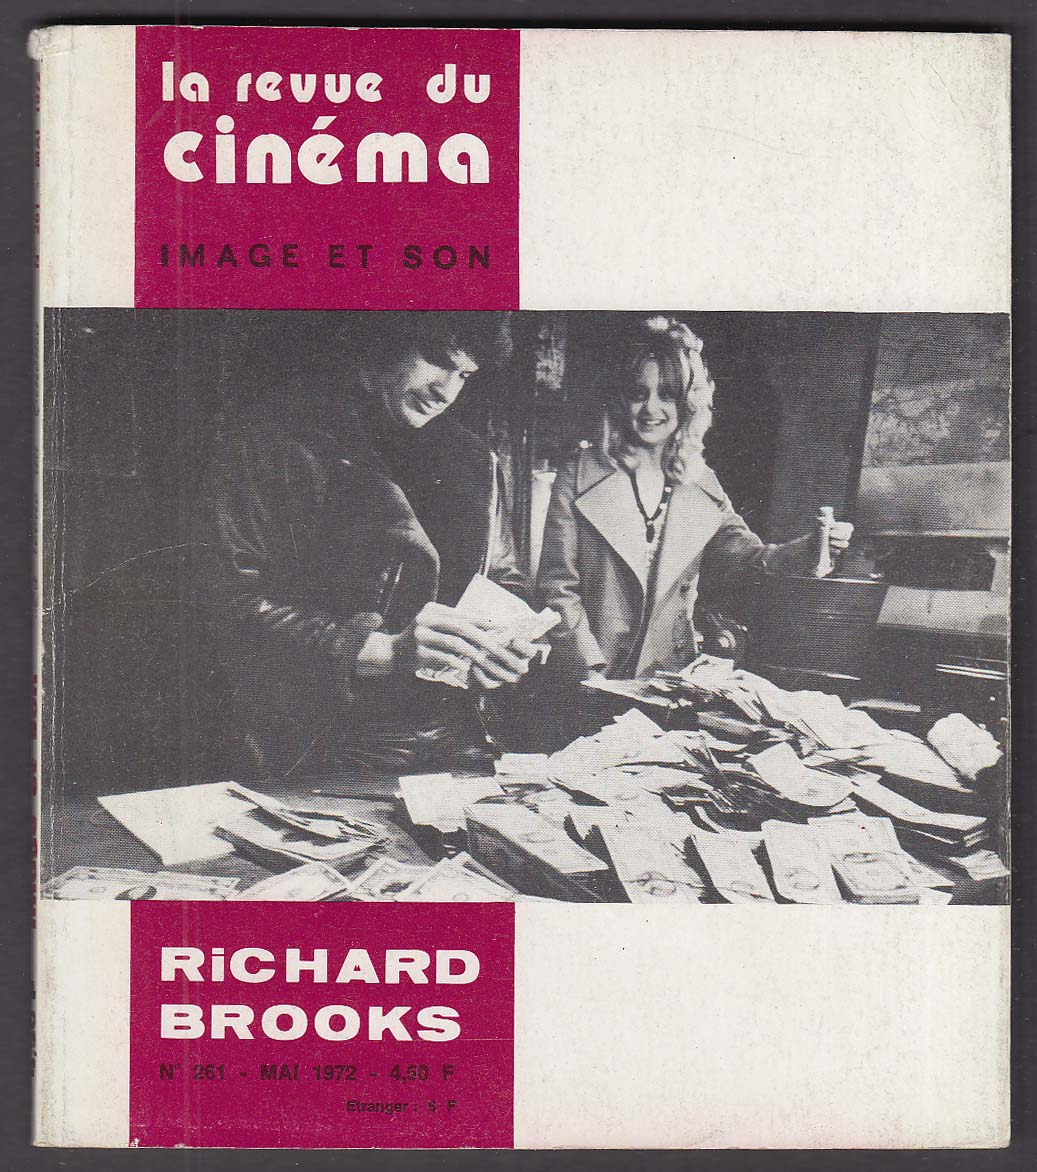 LA REVUE DU CINEMA Richard Brooks Goldie Hawn Warren Beatty $ Dollars 5 1972